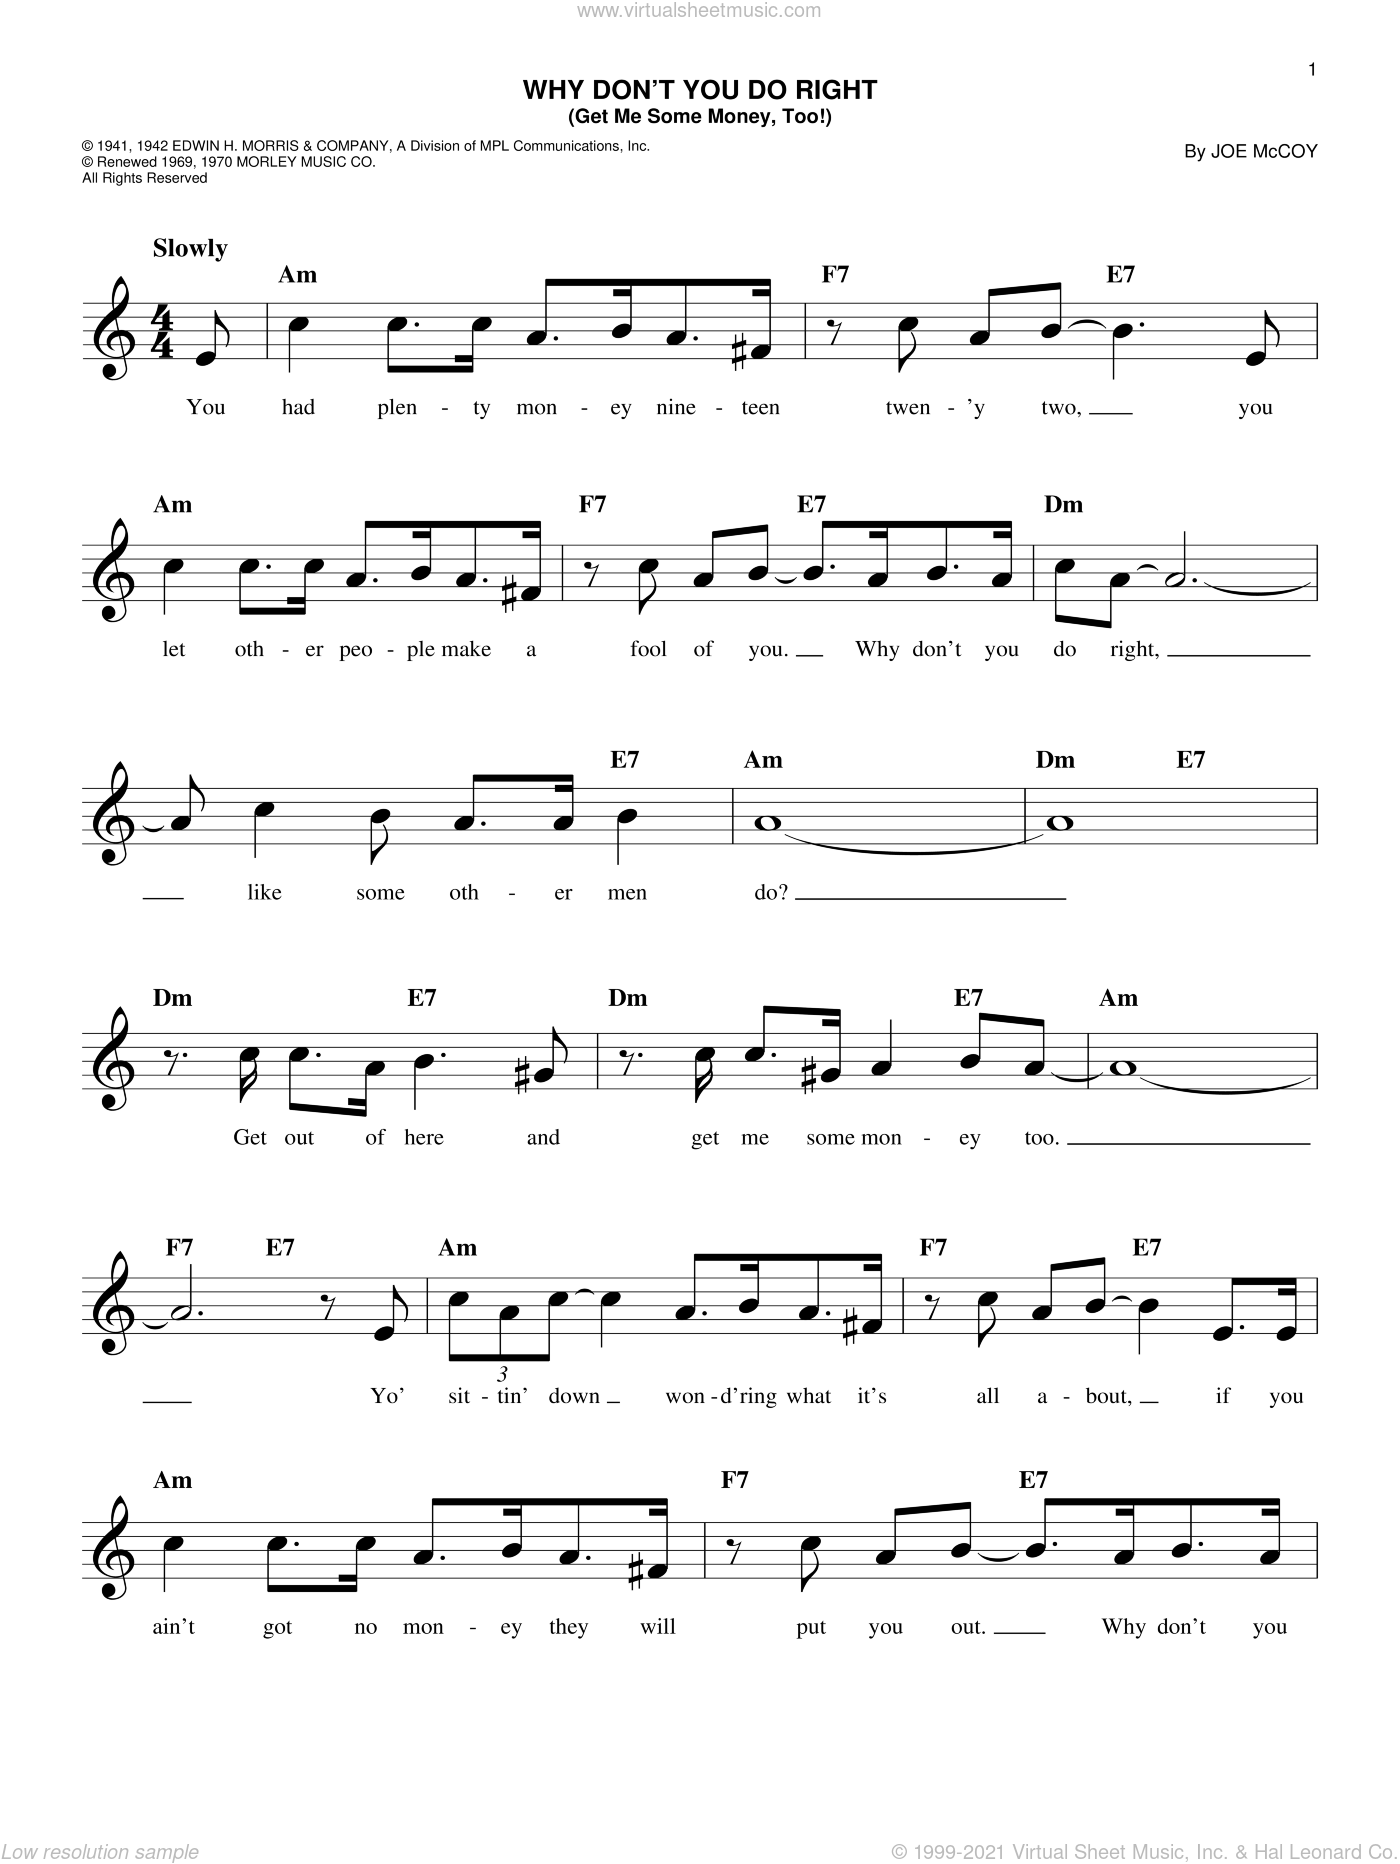 Why Don't You Do Right (Get Me Some Money, Too!) sheet music for voice and other instruments (fake book) by Peggy Lee and Joe McCoy, intermediate skill level